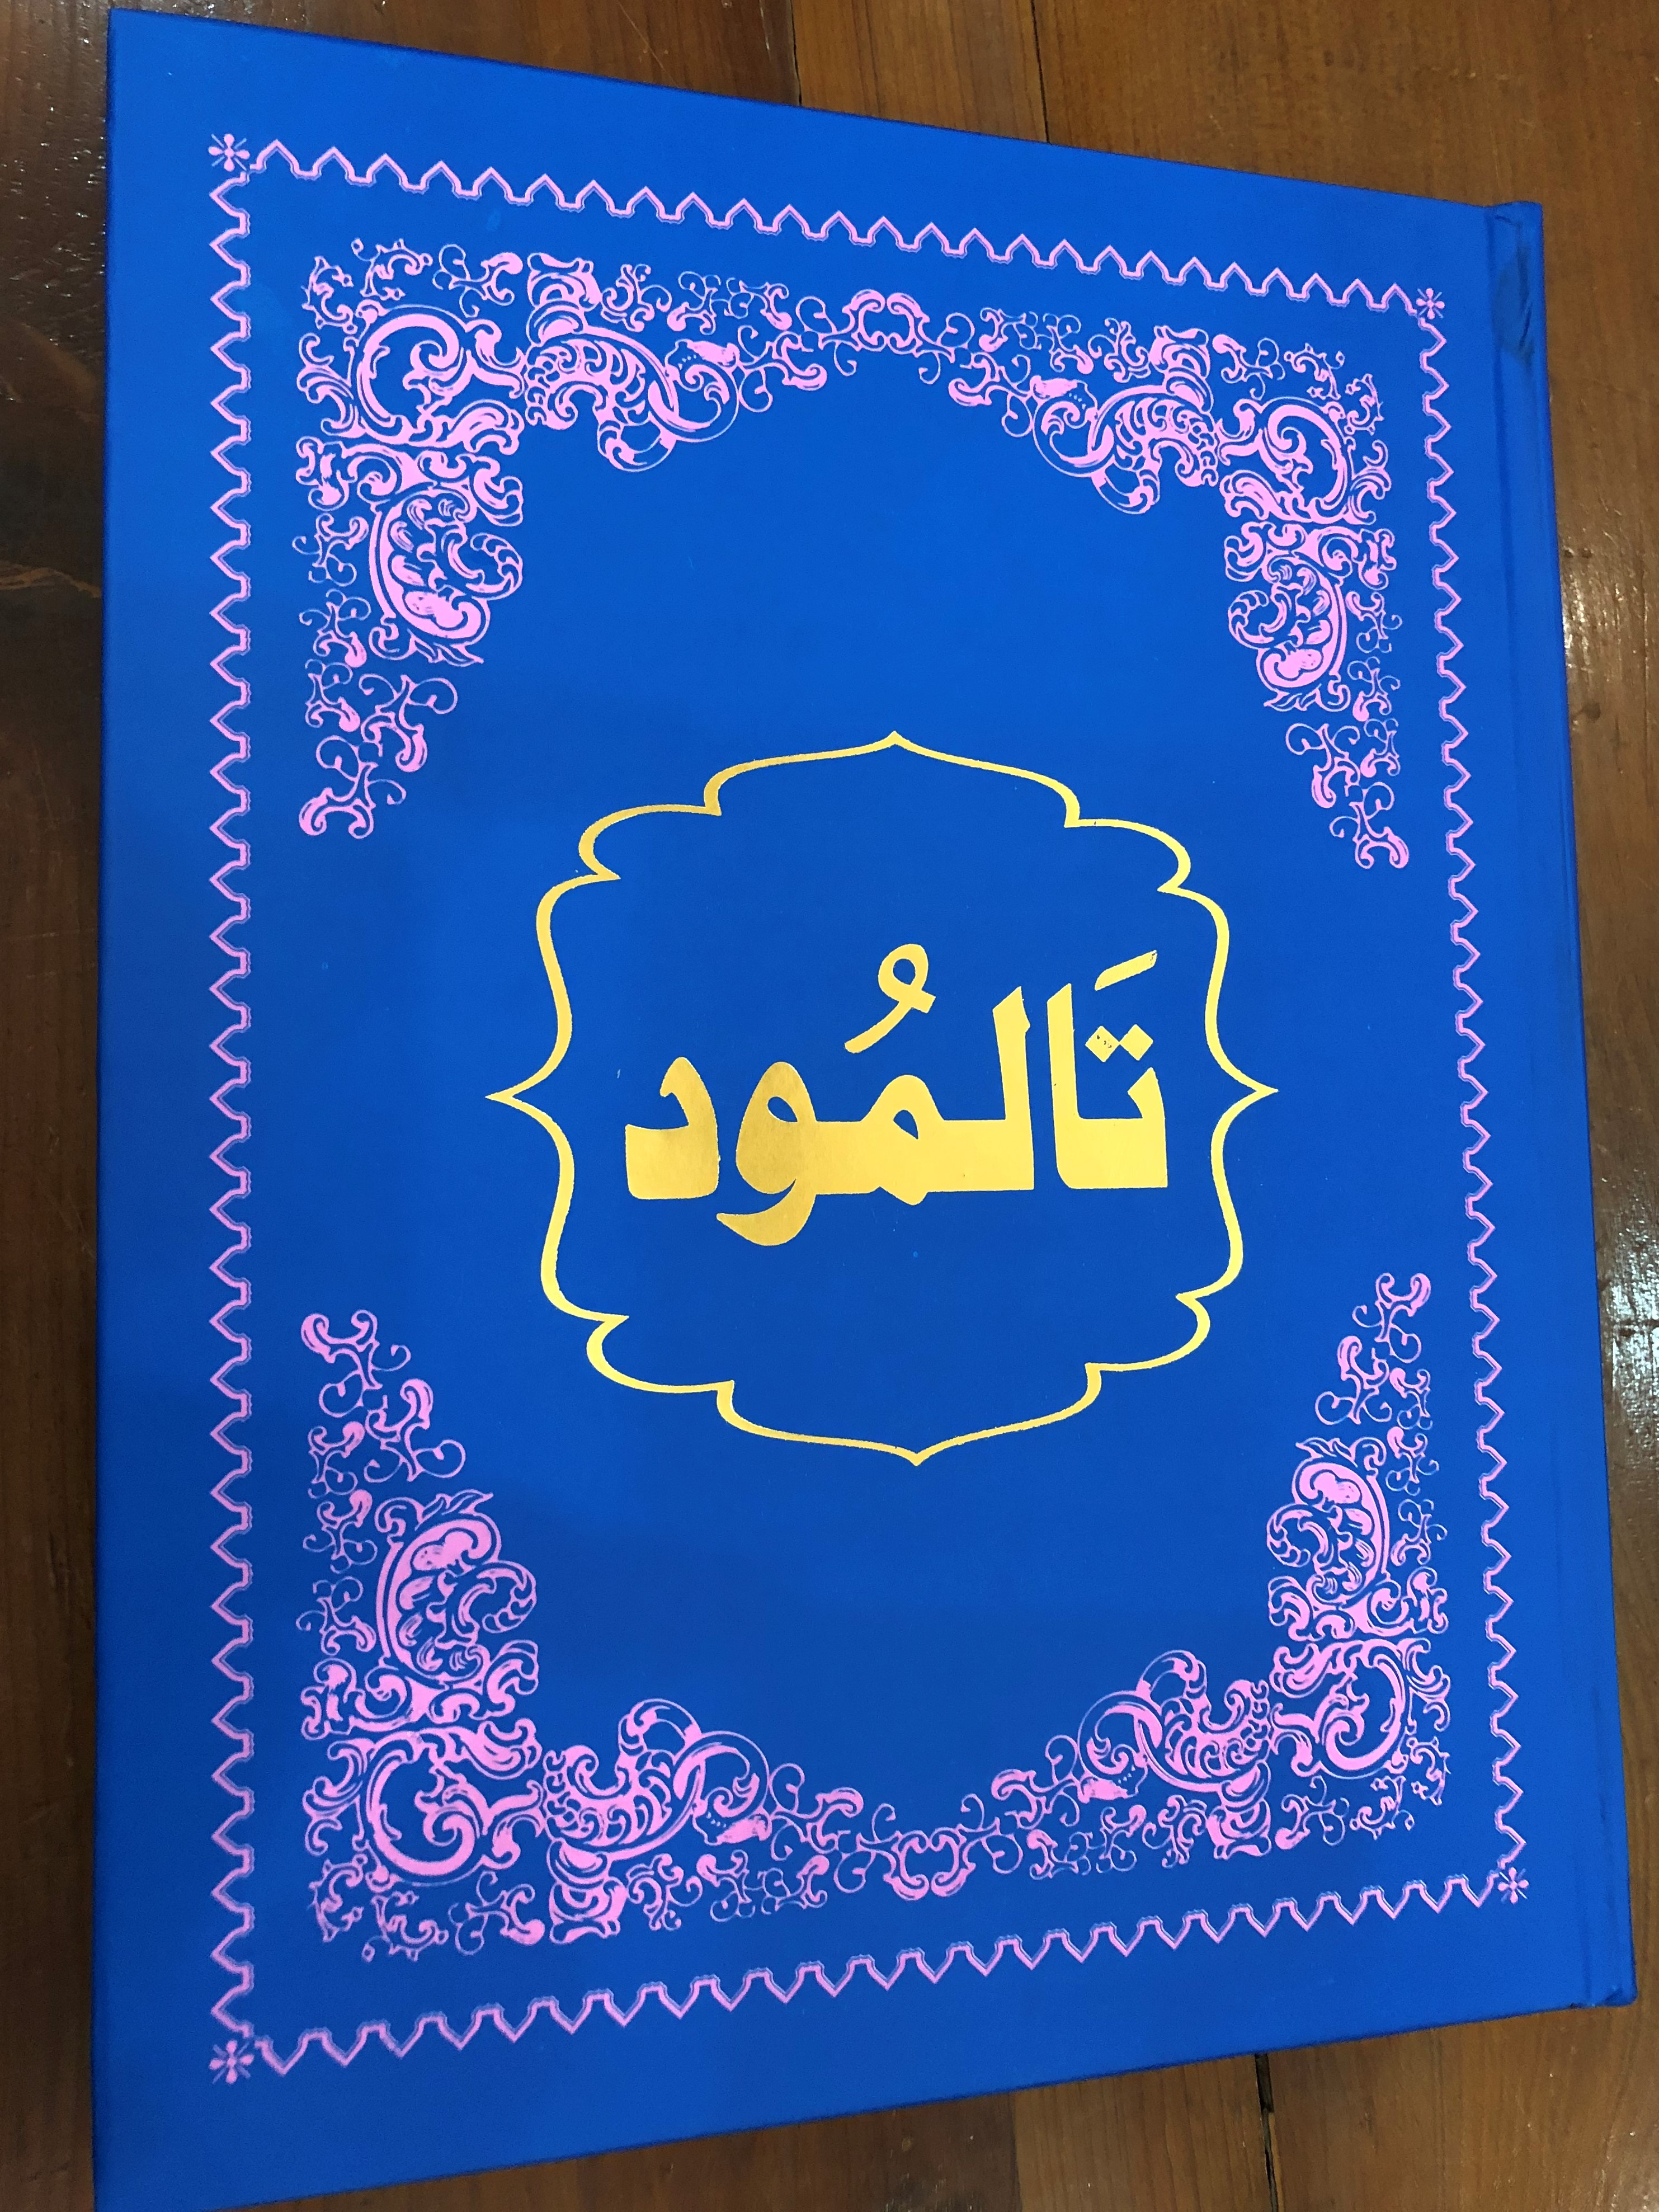 the-talmud-in-urdu-language-pakistan-hardcover-2018-1-.jpg